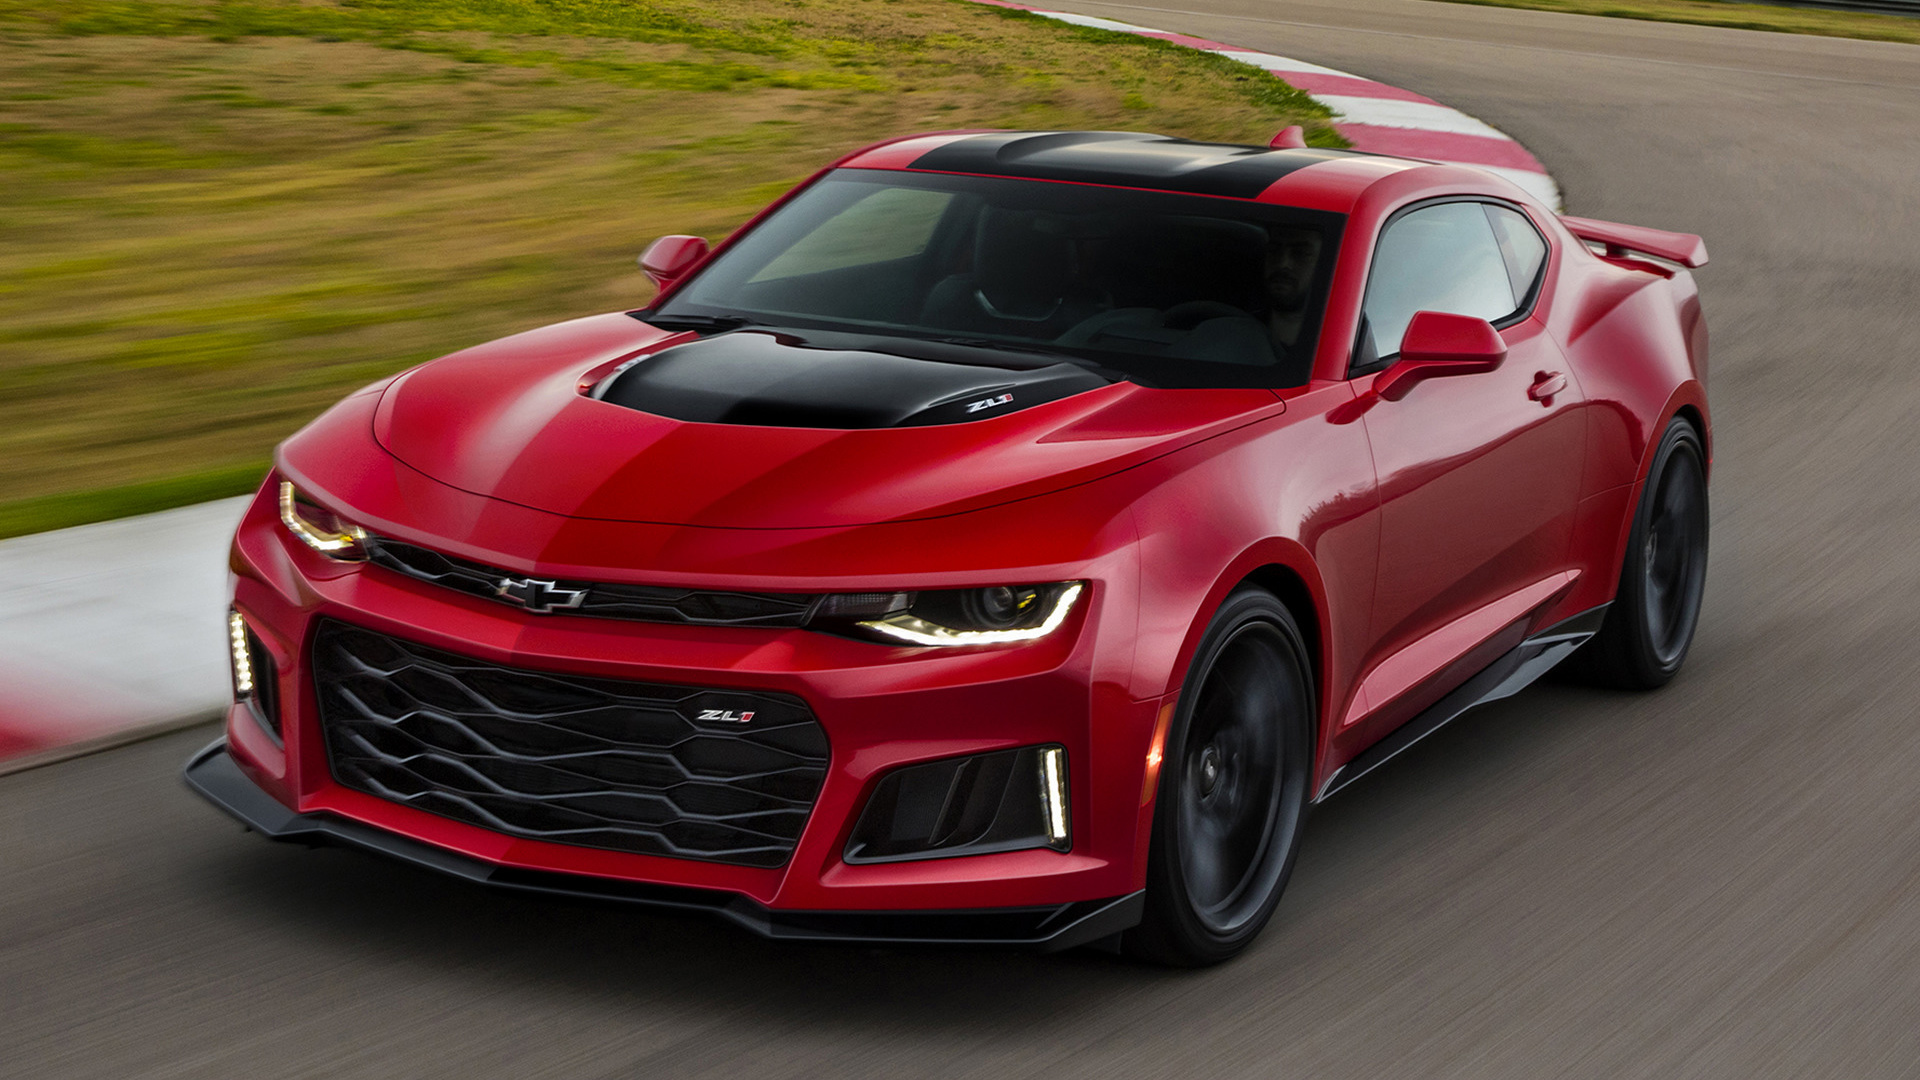 2017 Chevrolet Camaro Zl1 Wallpapers And Hd Images Car Pixel